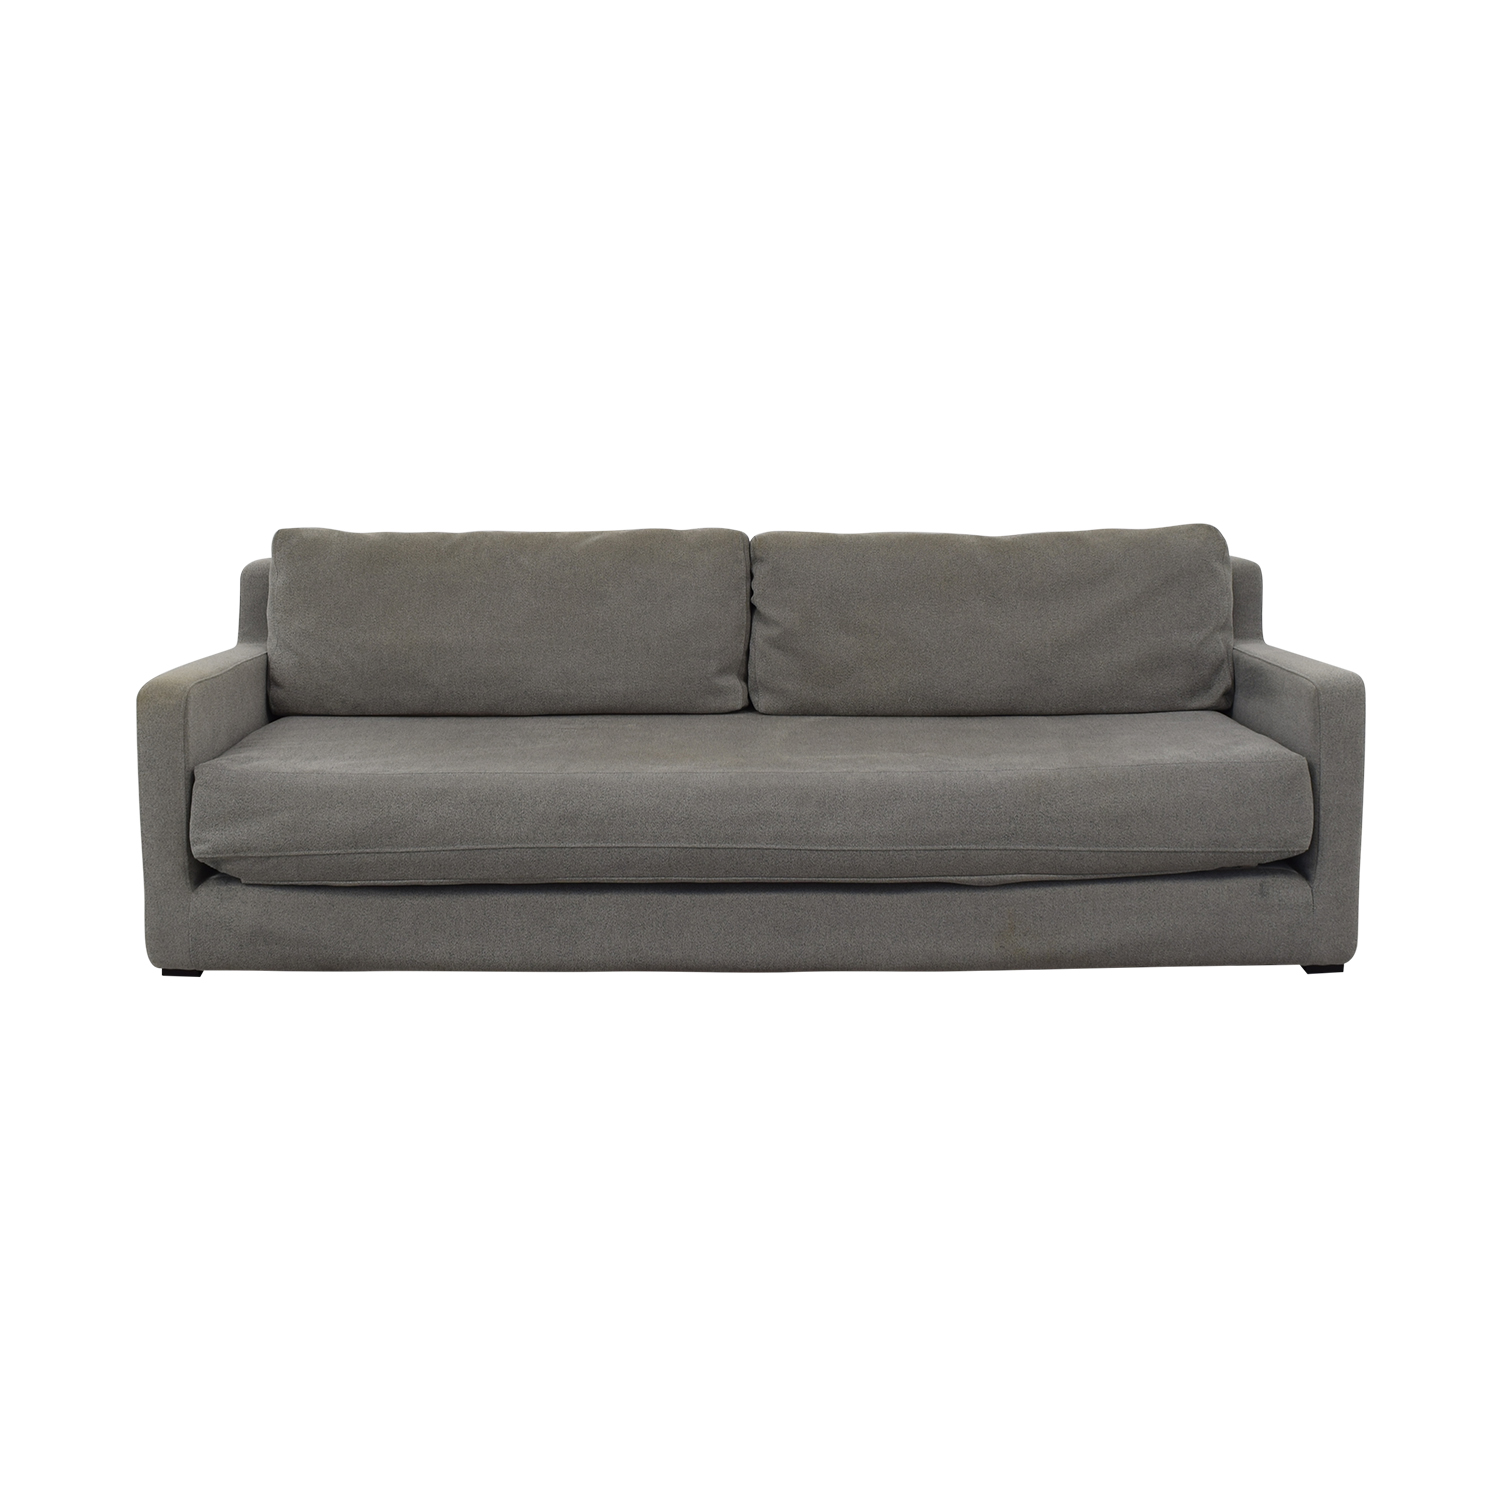 buy Gus Modern Fabric Sleeper Sofa Gus Modern Sofas